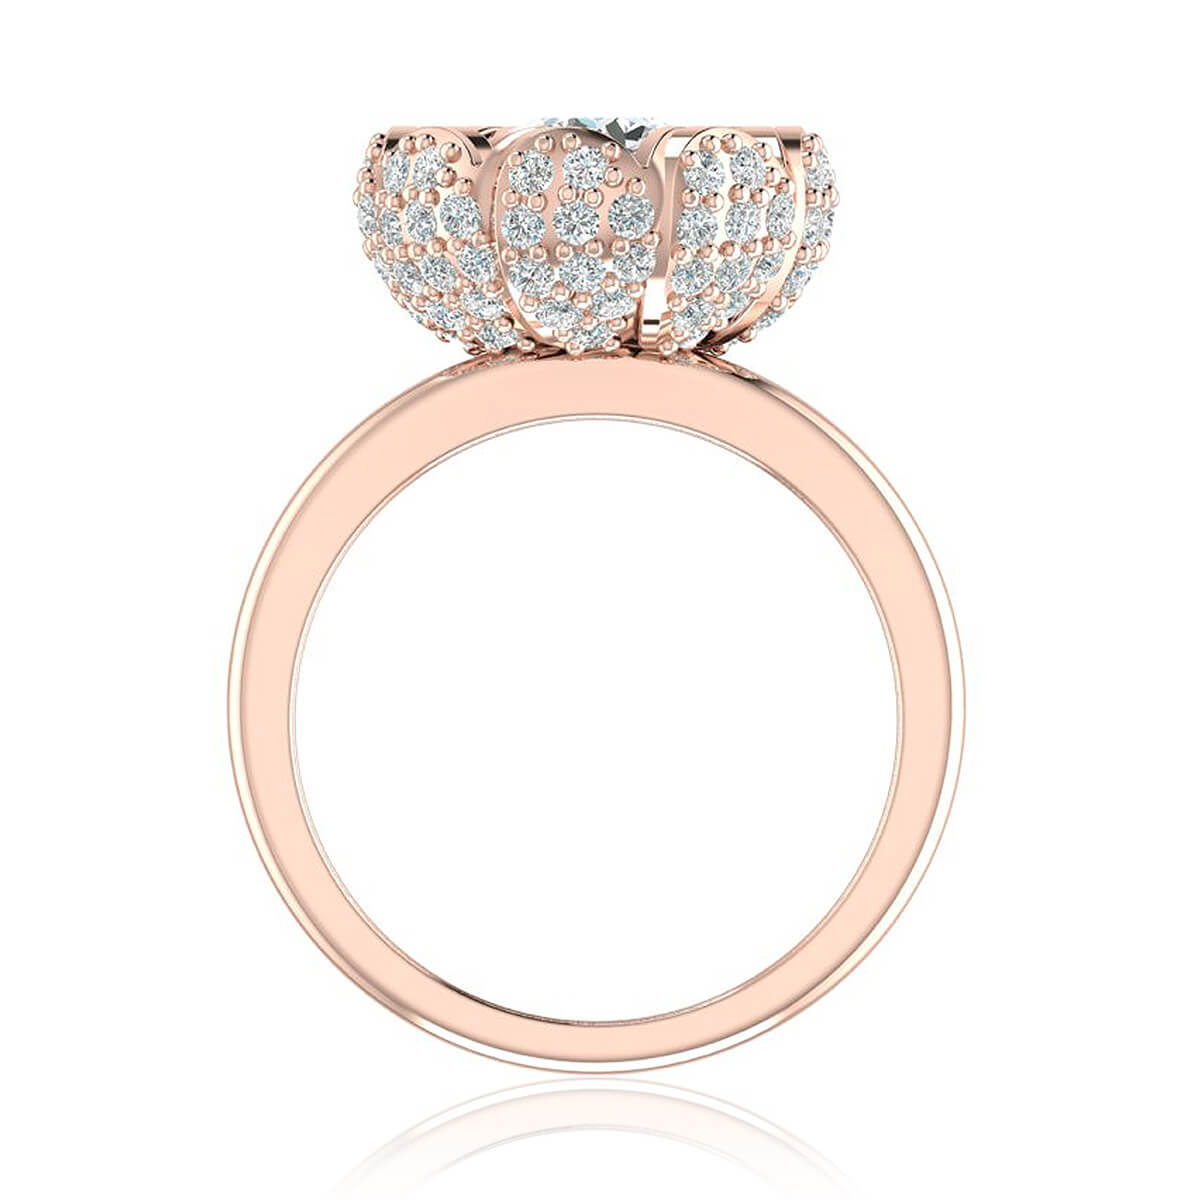 gripoix rings chanel pink gold ring camellia cc pearl